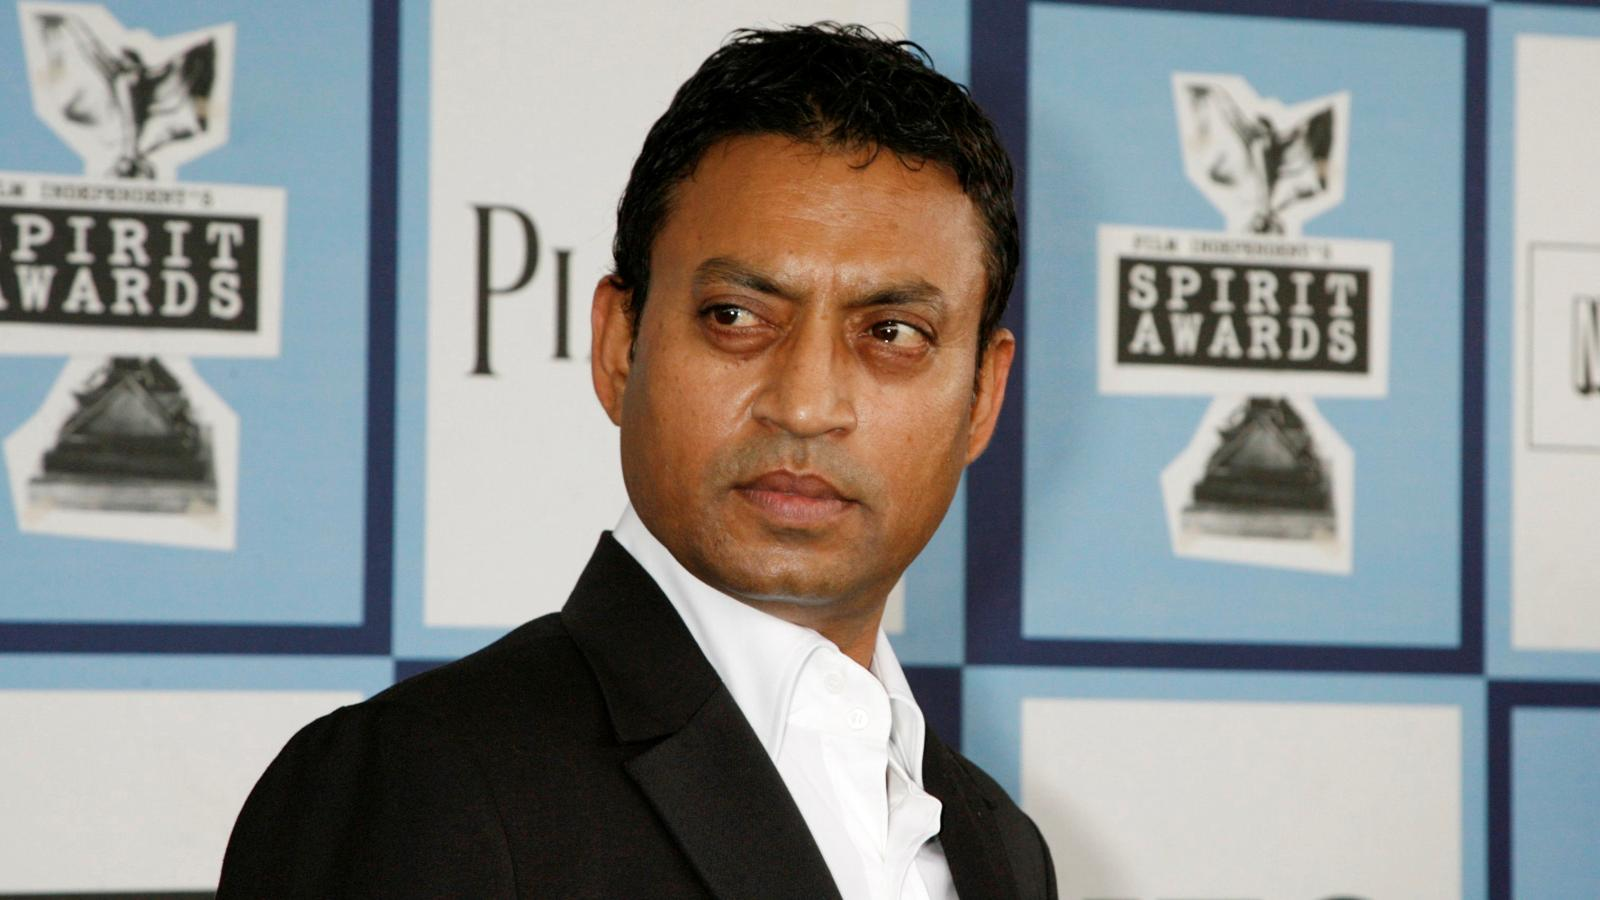 Irrfan Khan, who died at 53, was successful in bollywood and hollywood —  Quartz India